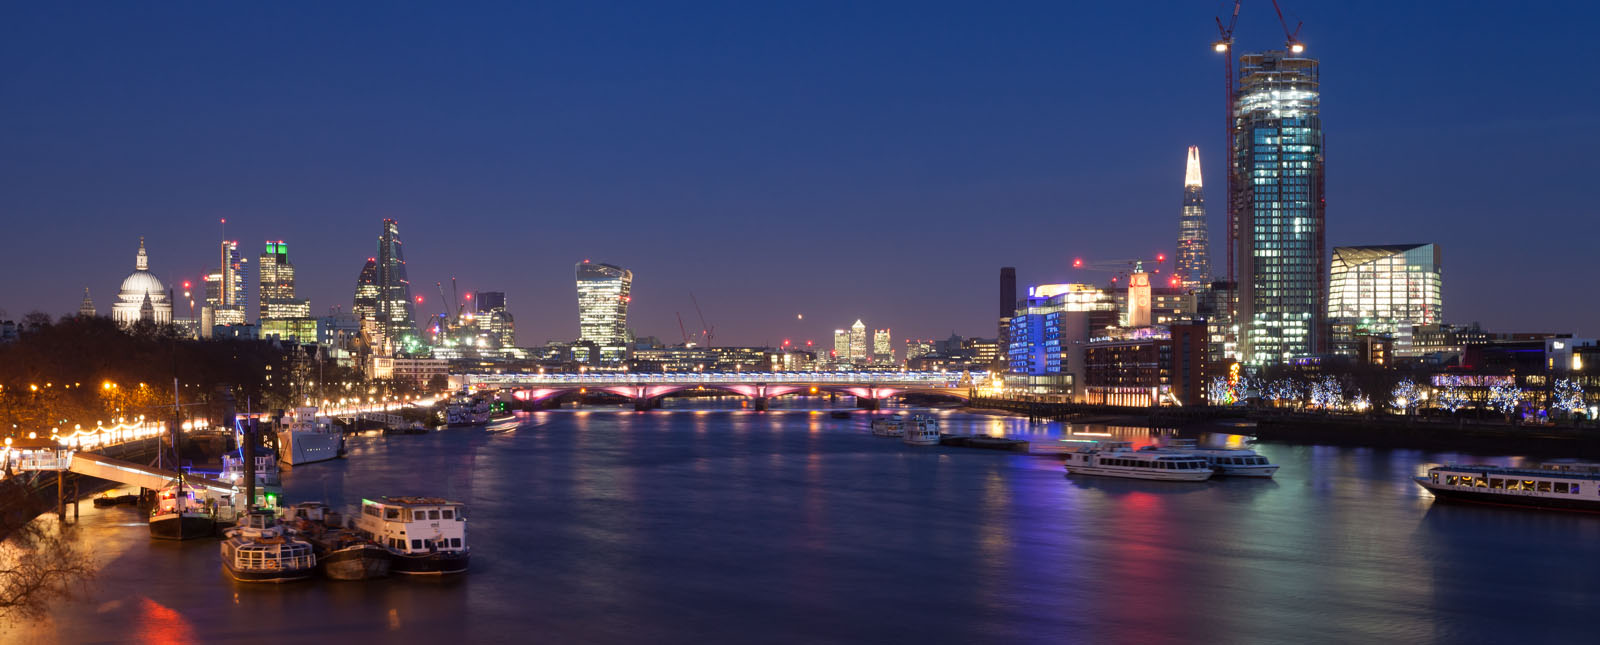 River Thames from Waterloo Bridge at dusk